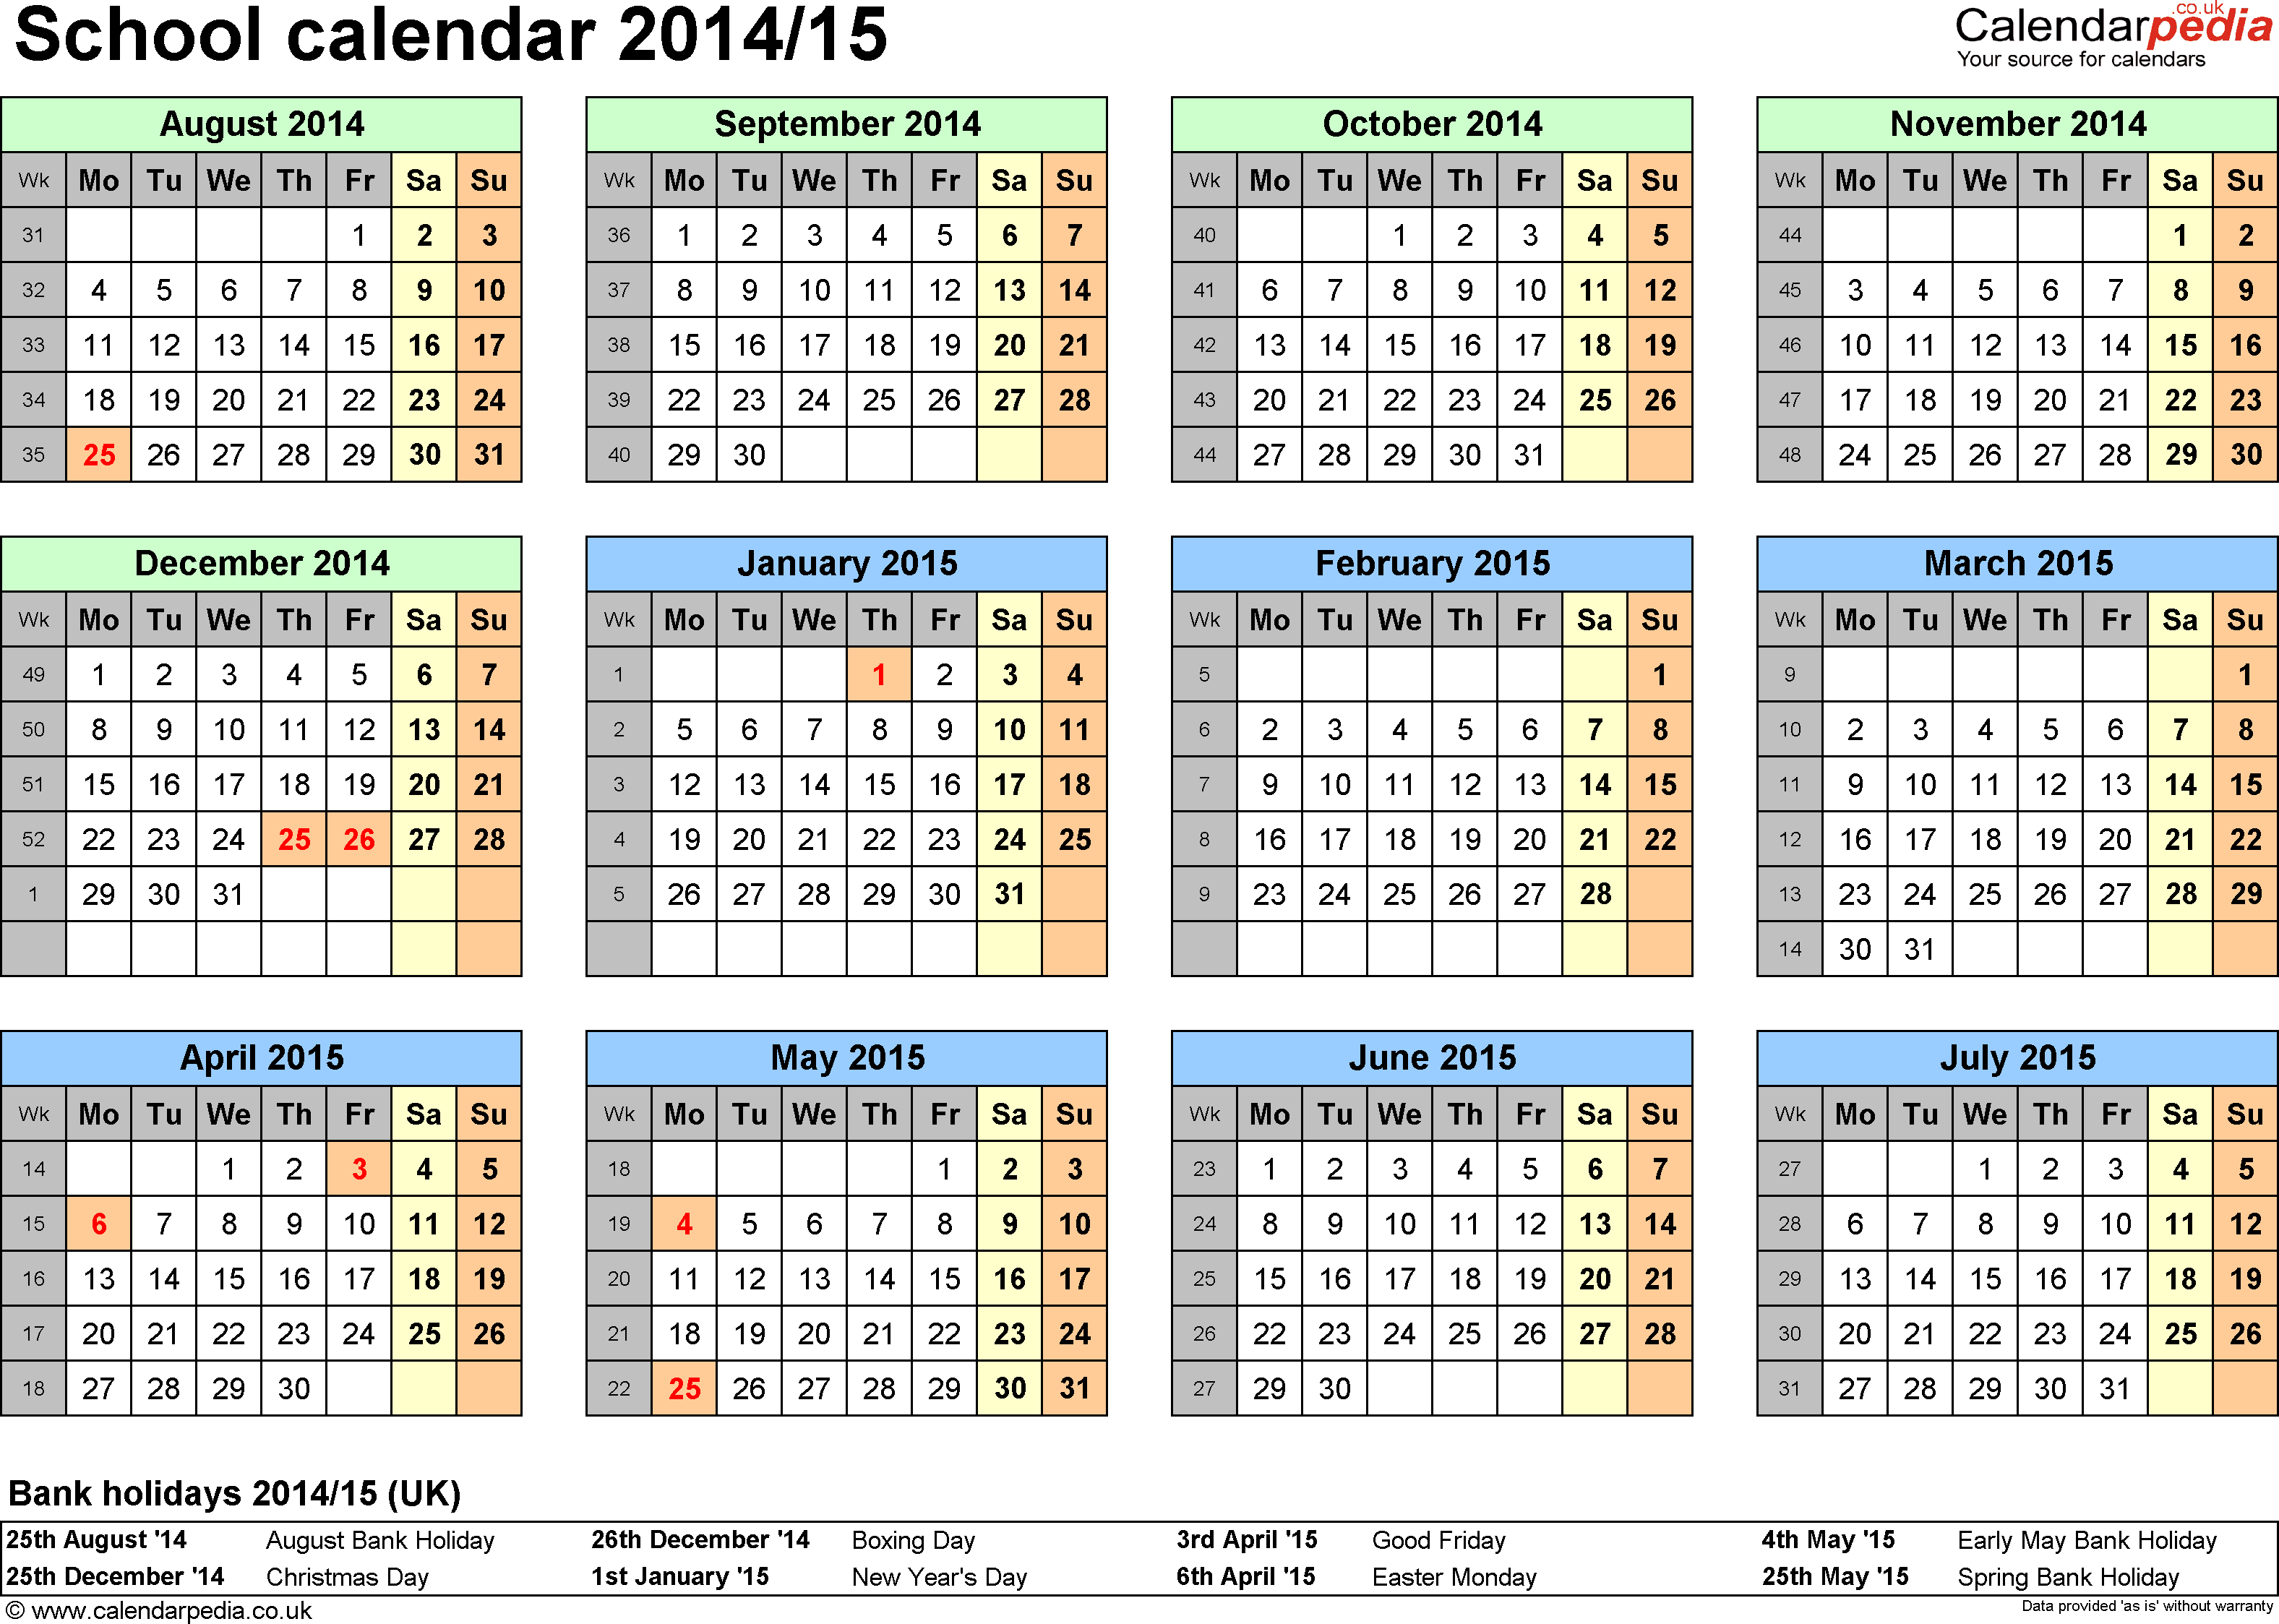 Template 4: School year calendars 2014/15 as Excel template, year at a glance, 1 page